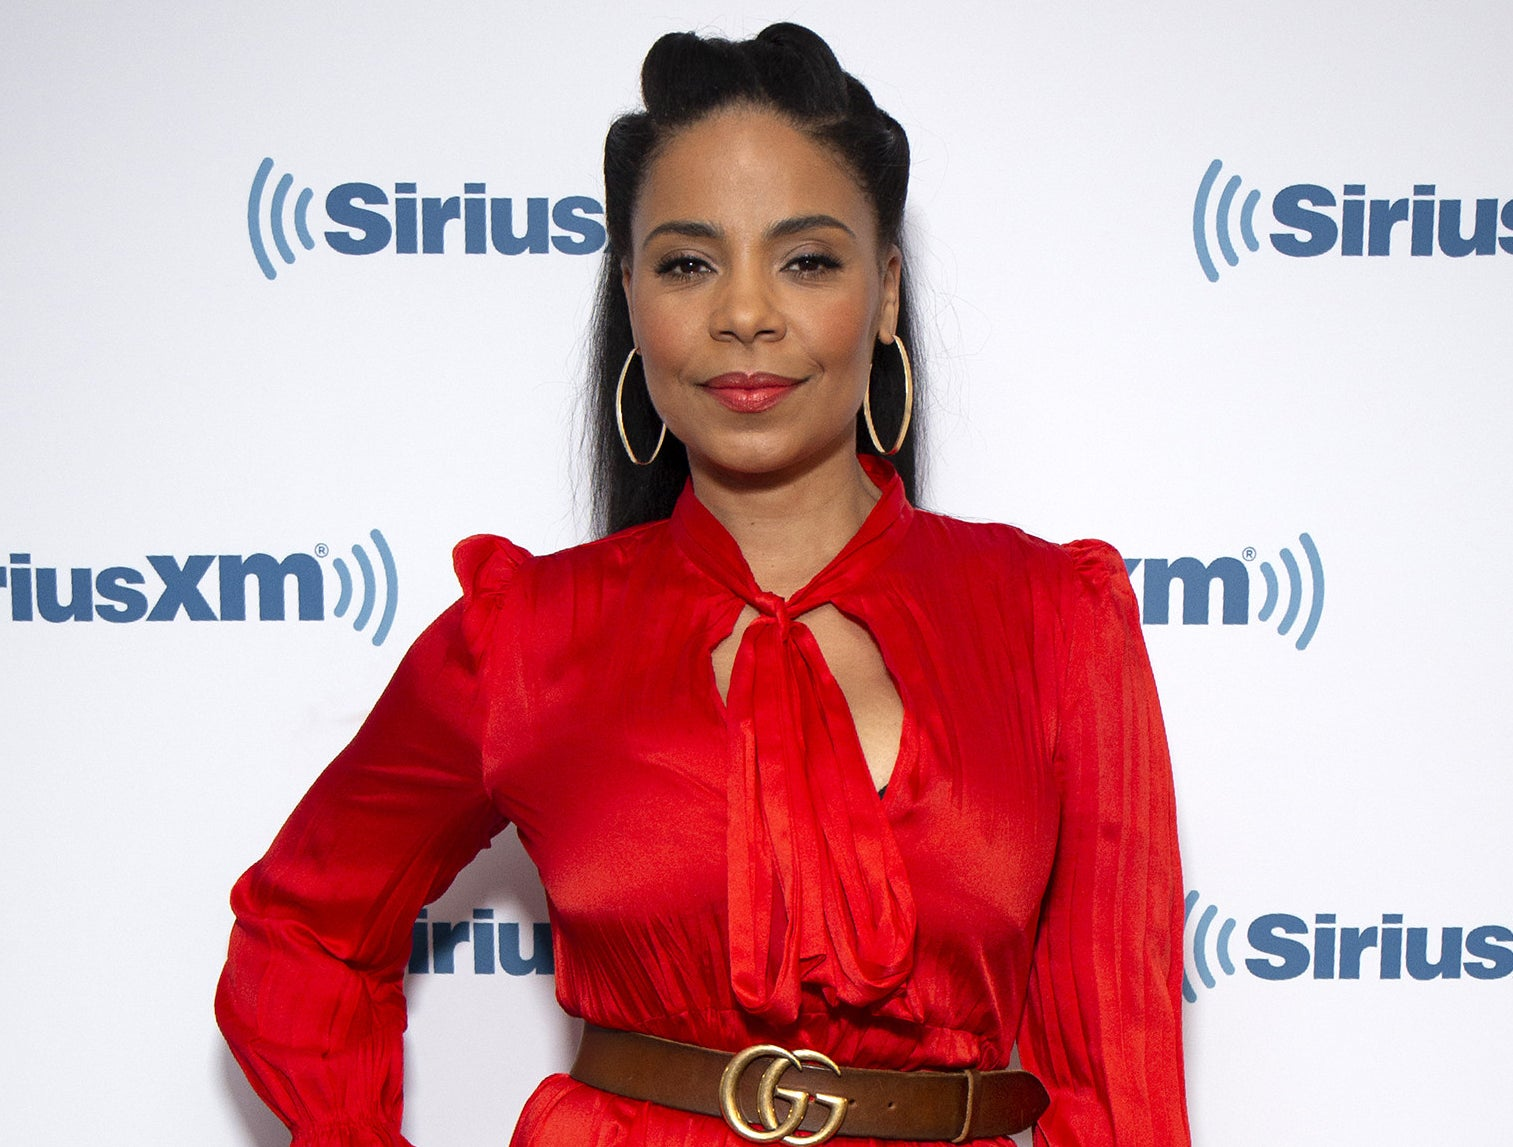 Sanaa wears a red dress with a keyhole neckline and brown Gucci belt